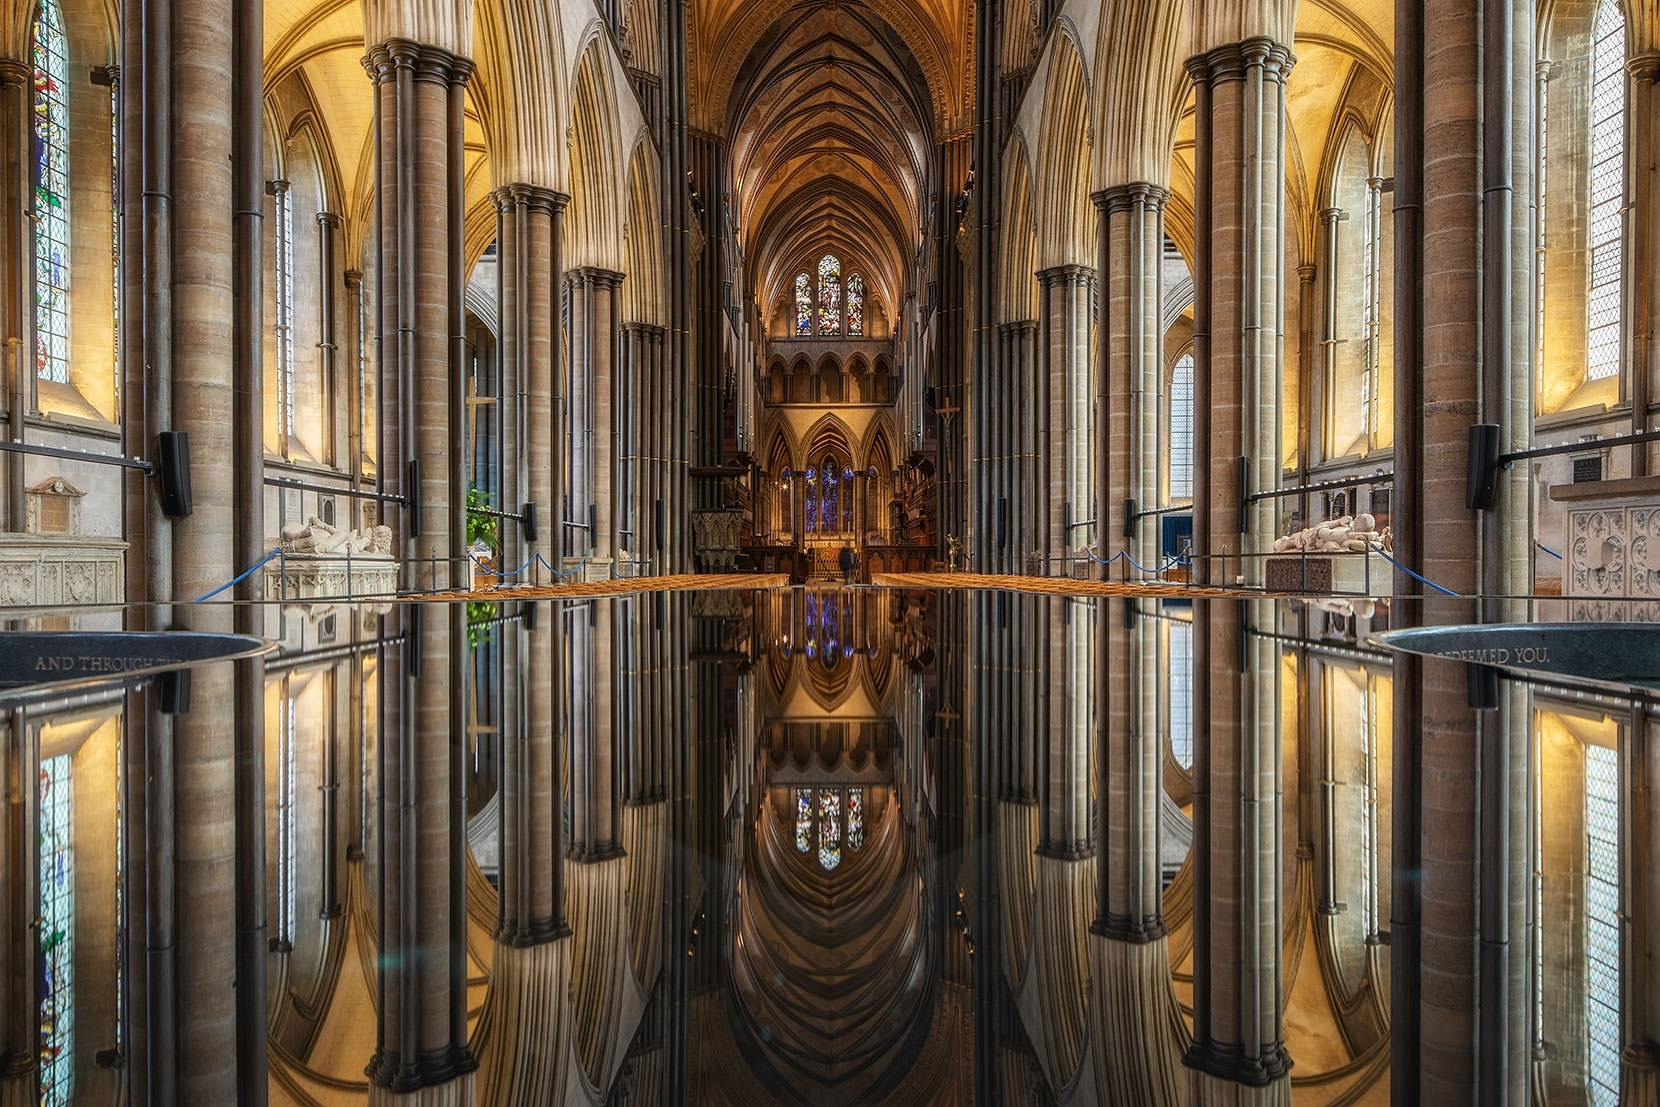 The only other interior reflection image I have seen is in Ely Cathedral, on a viewing mirror